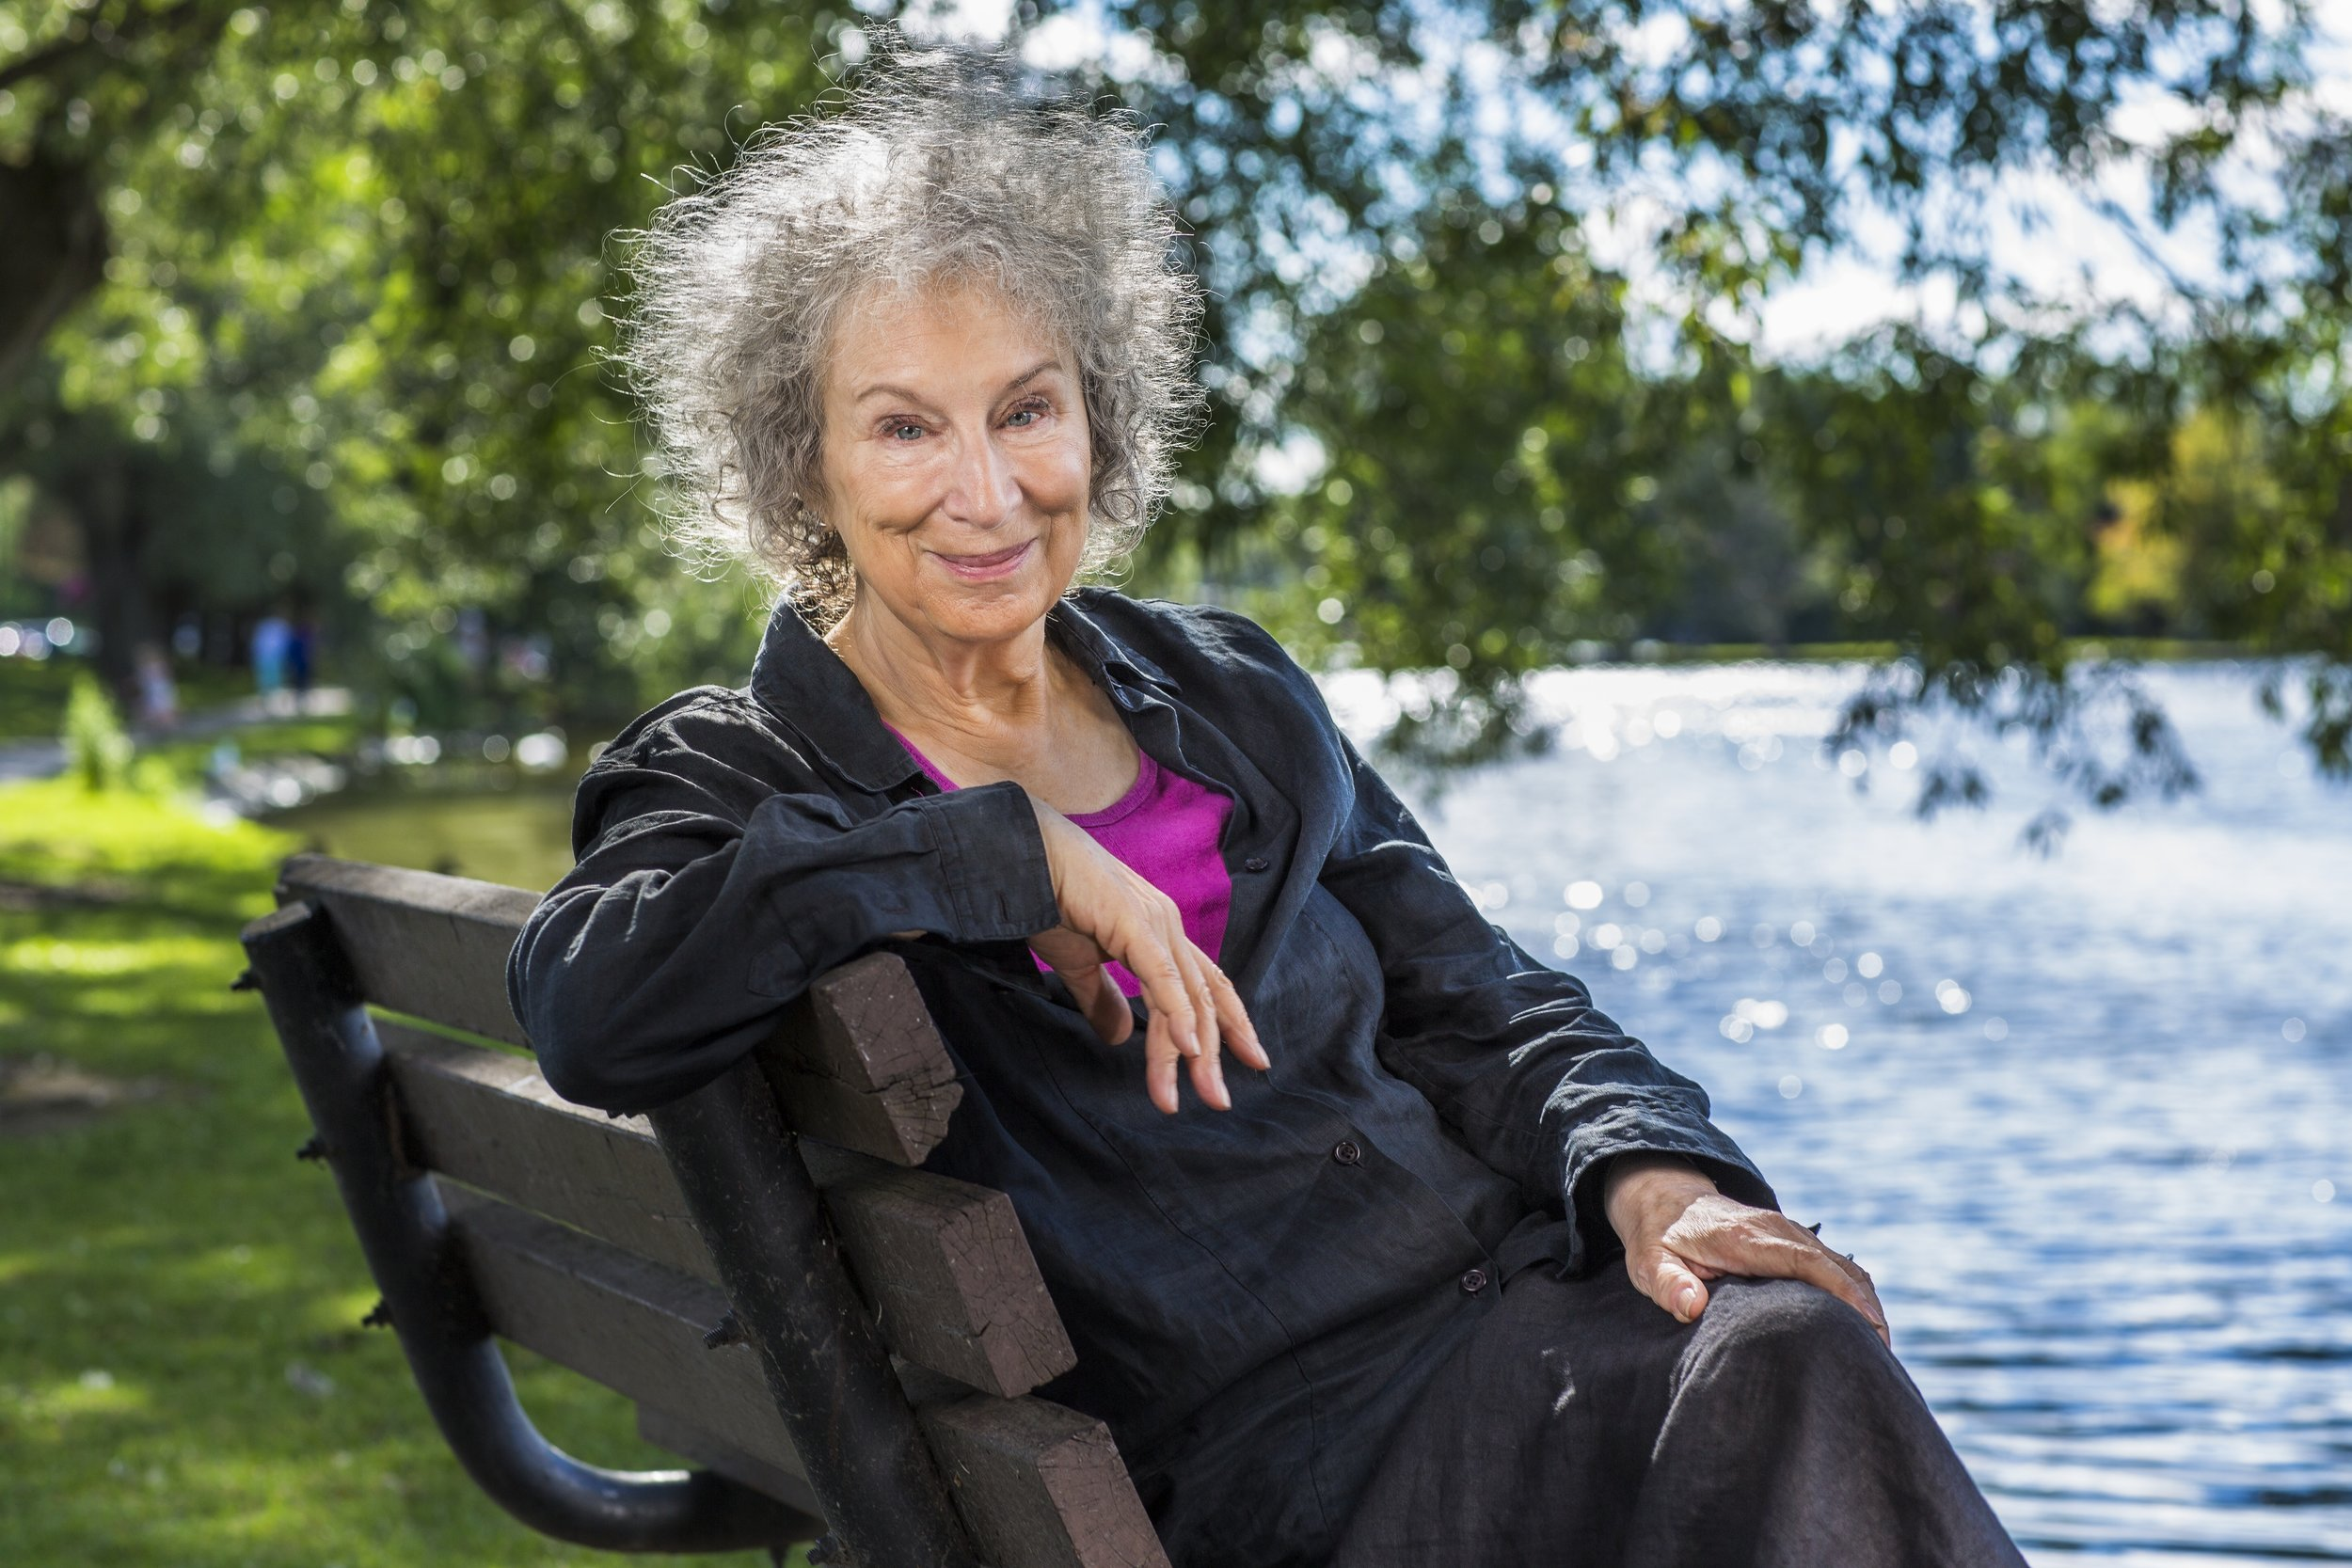 Margaret Atwood Headshot c. Liam Sharp.jpg